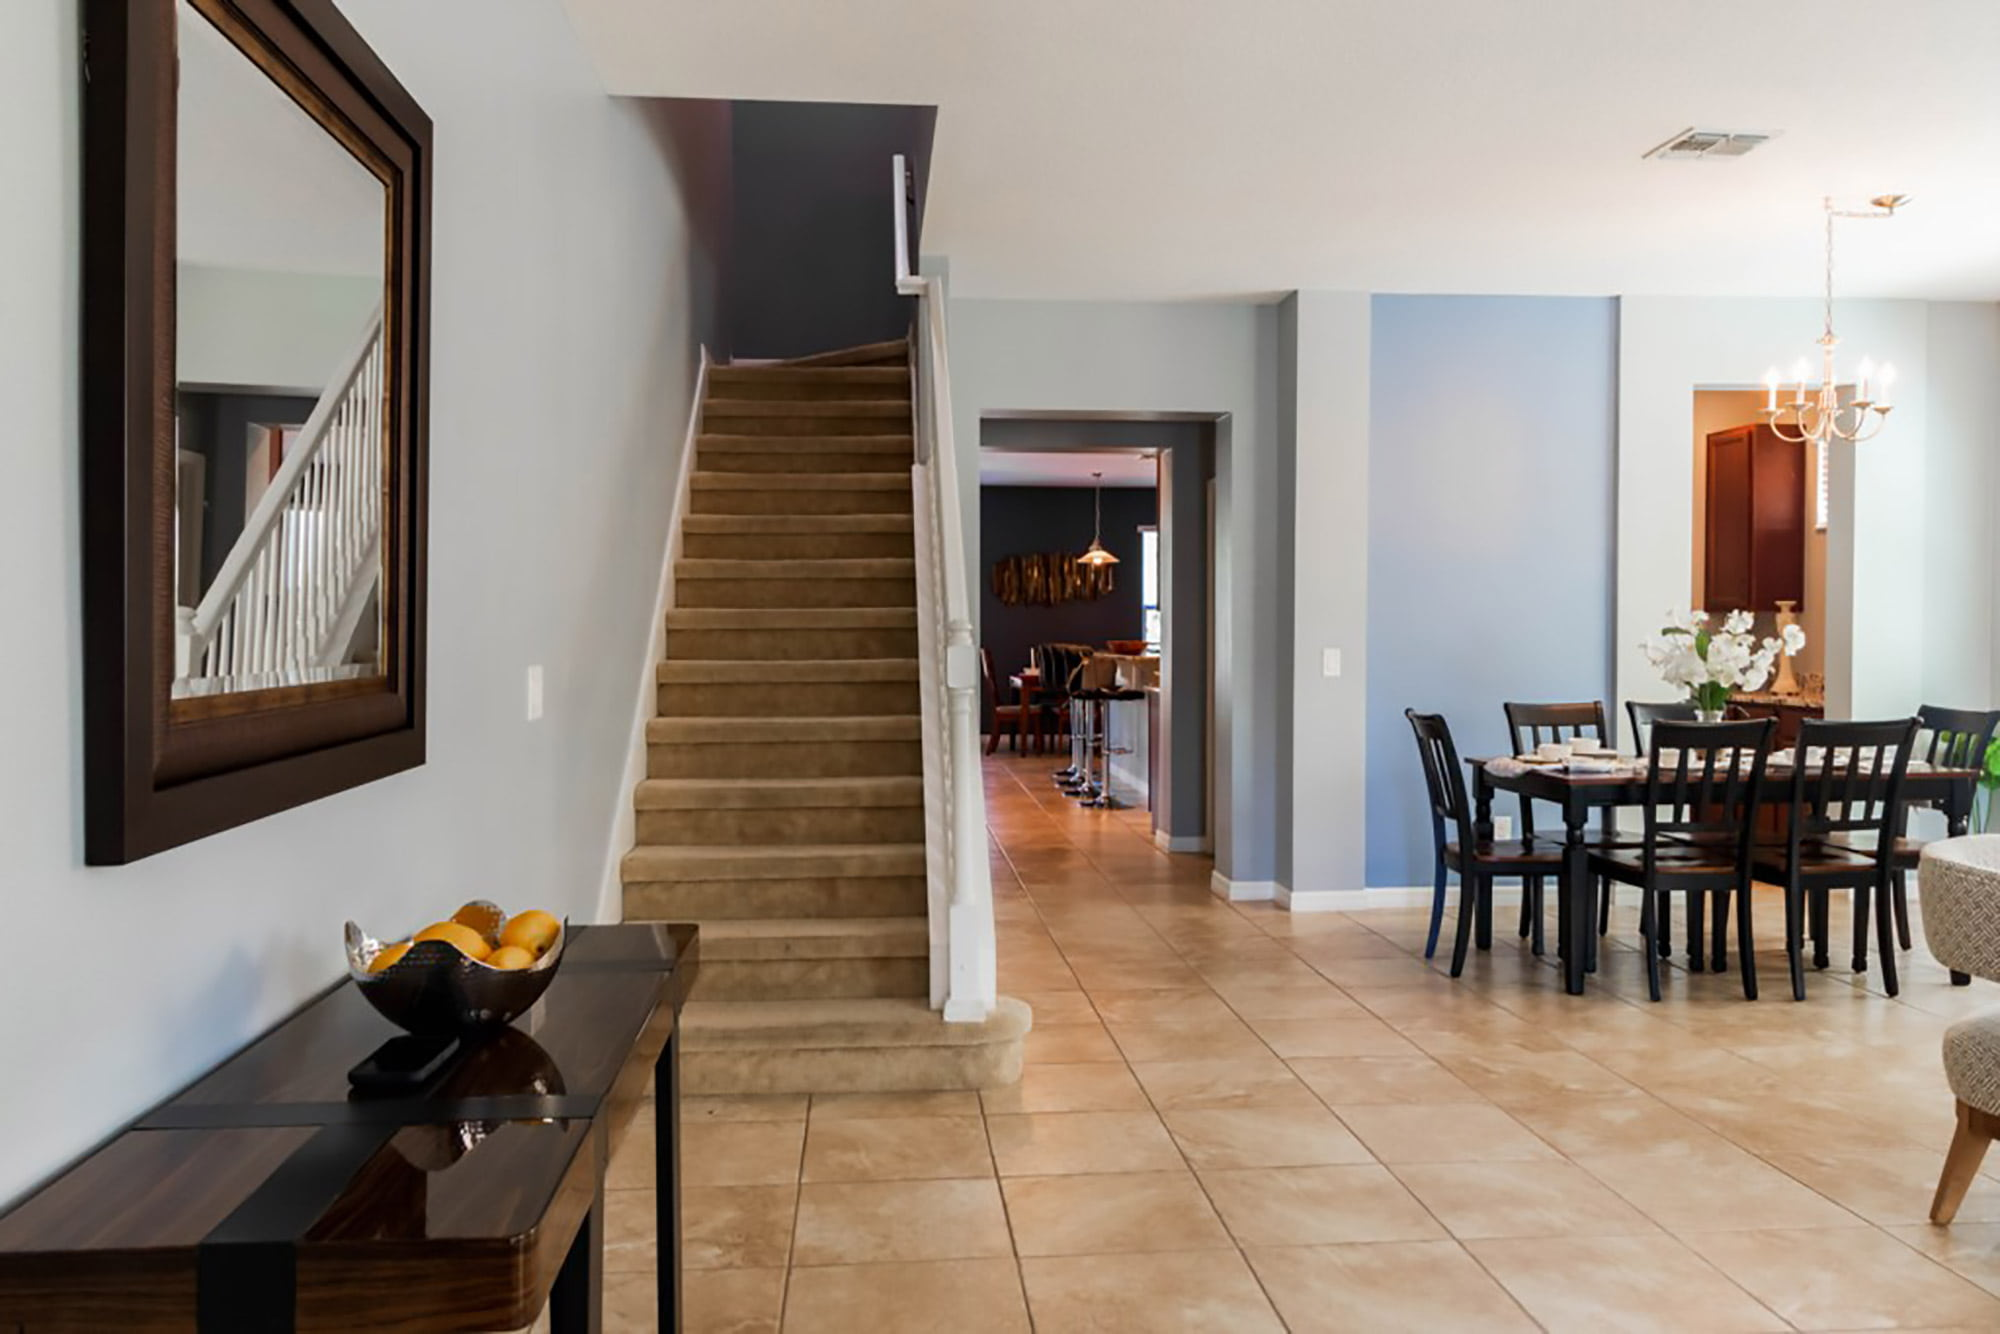 entryway stairs, and dining area of home managed by JC Vacation Homes